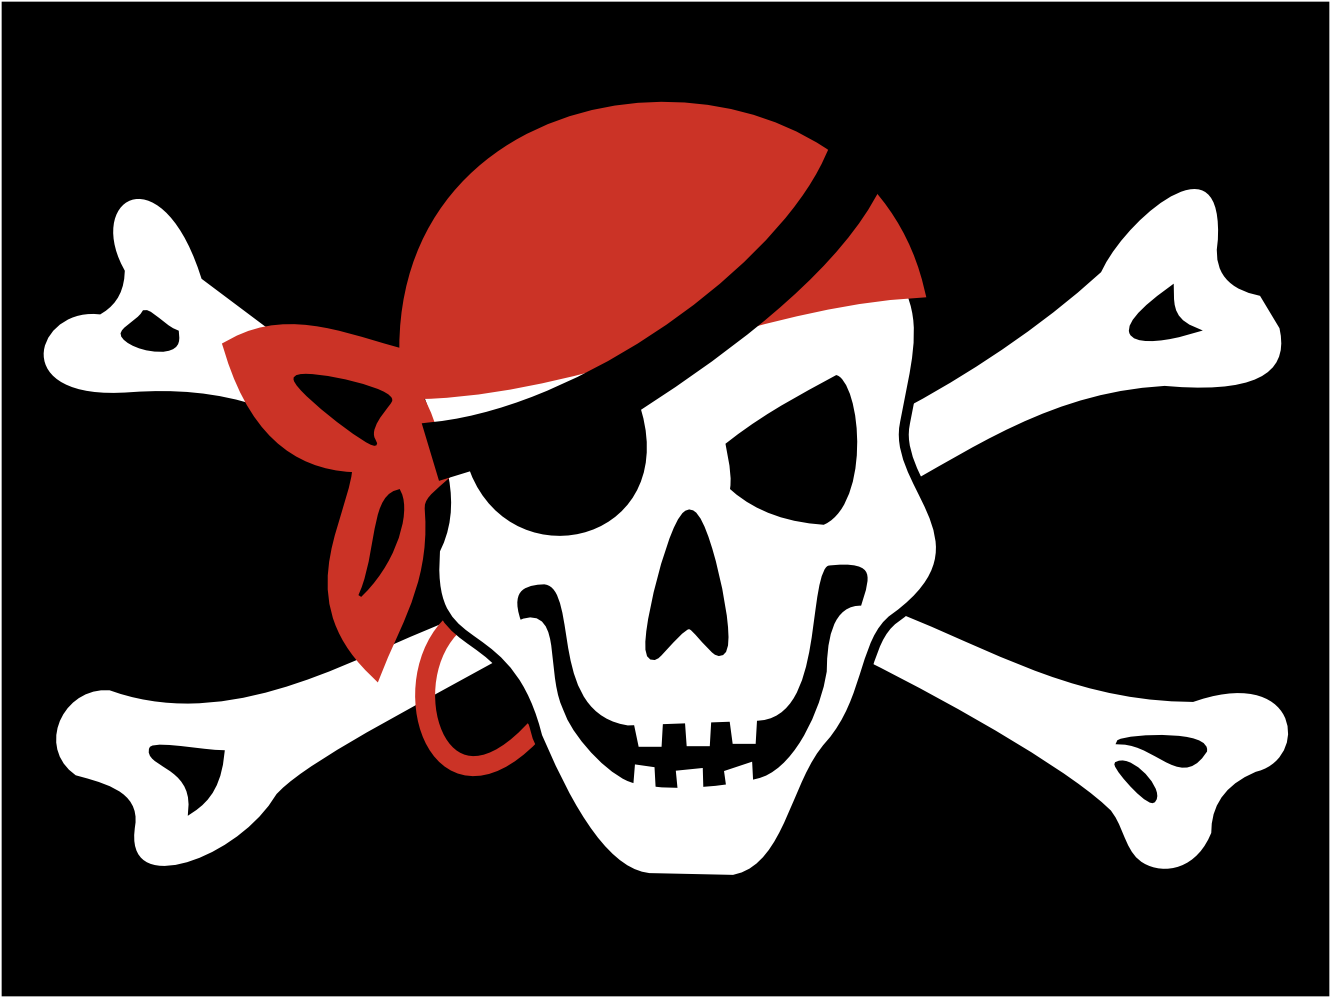 Ssckull clipart pirate skull Others Inspiration and Pirate Flag